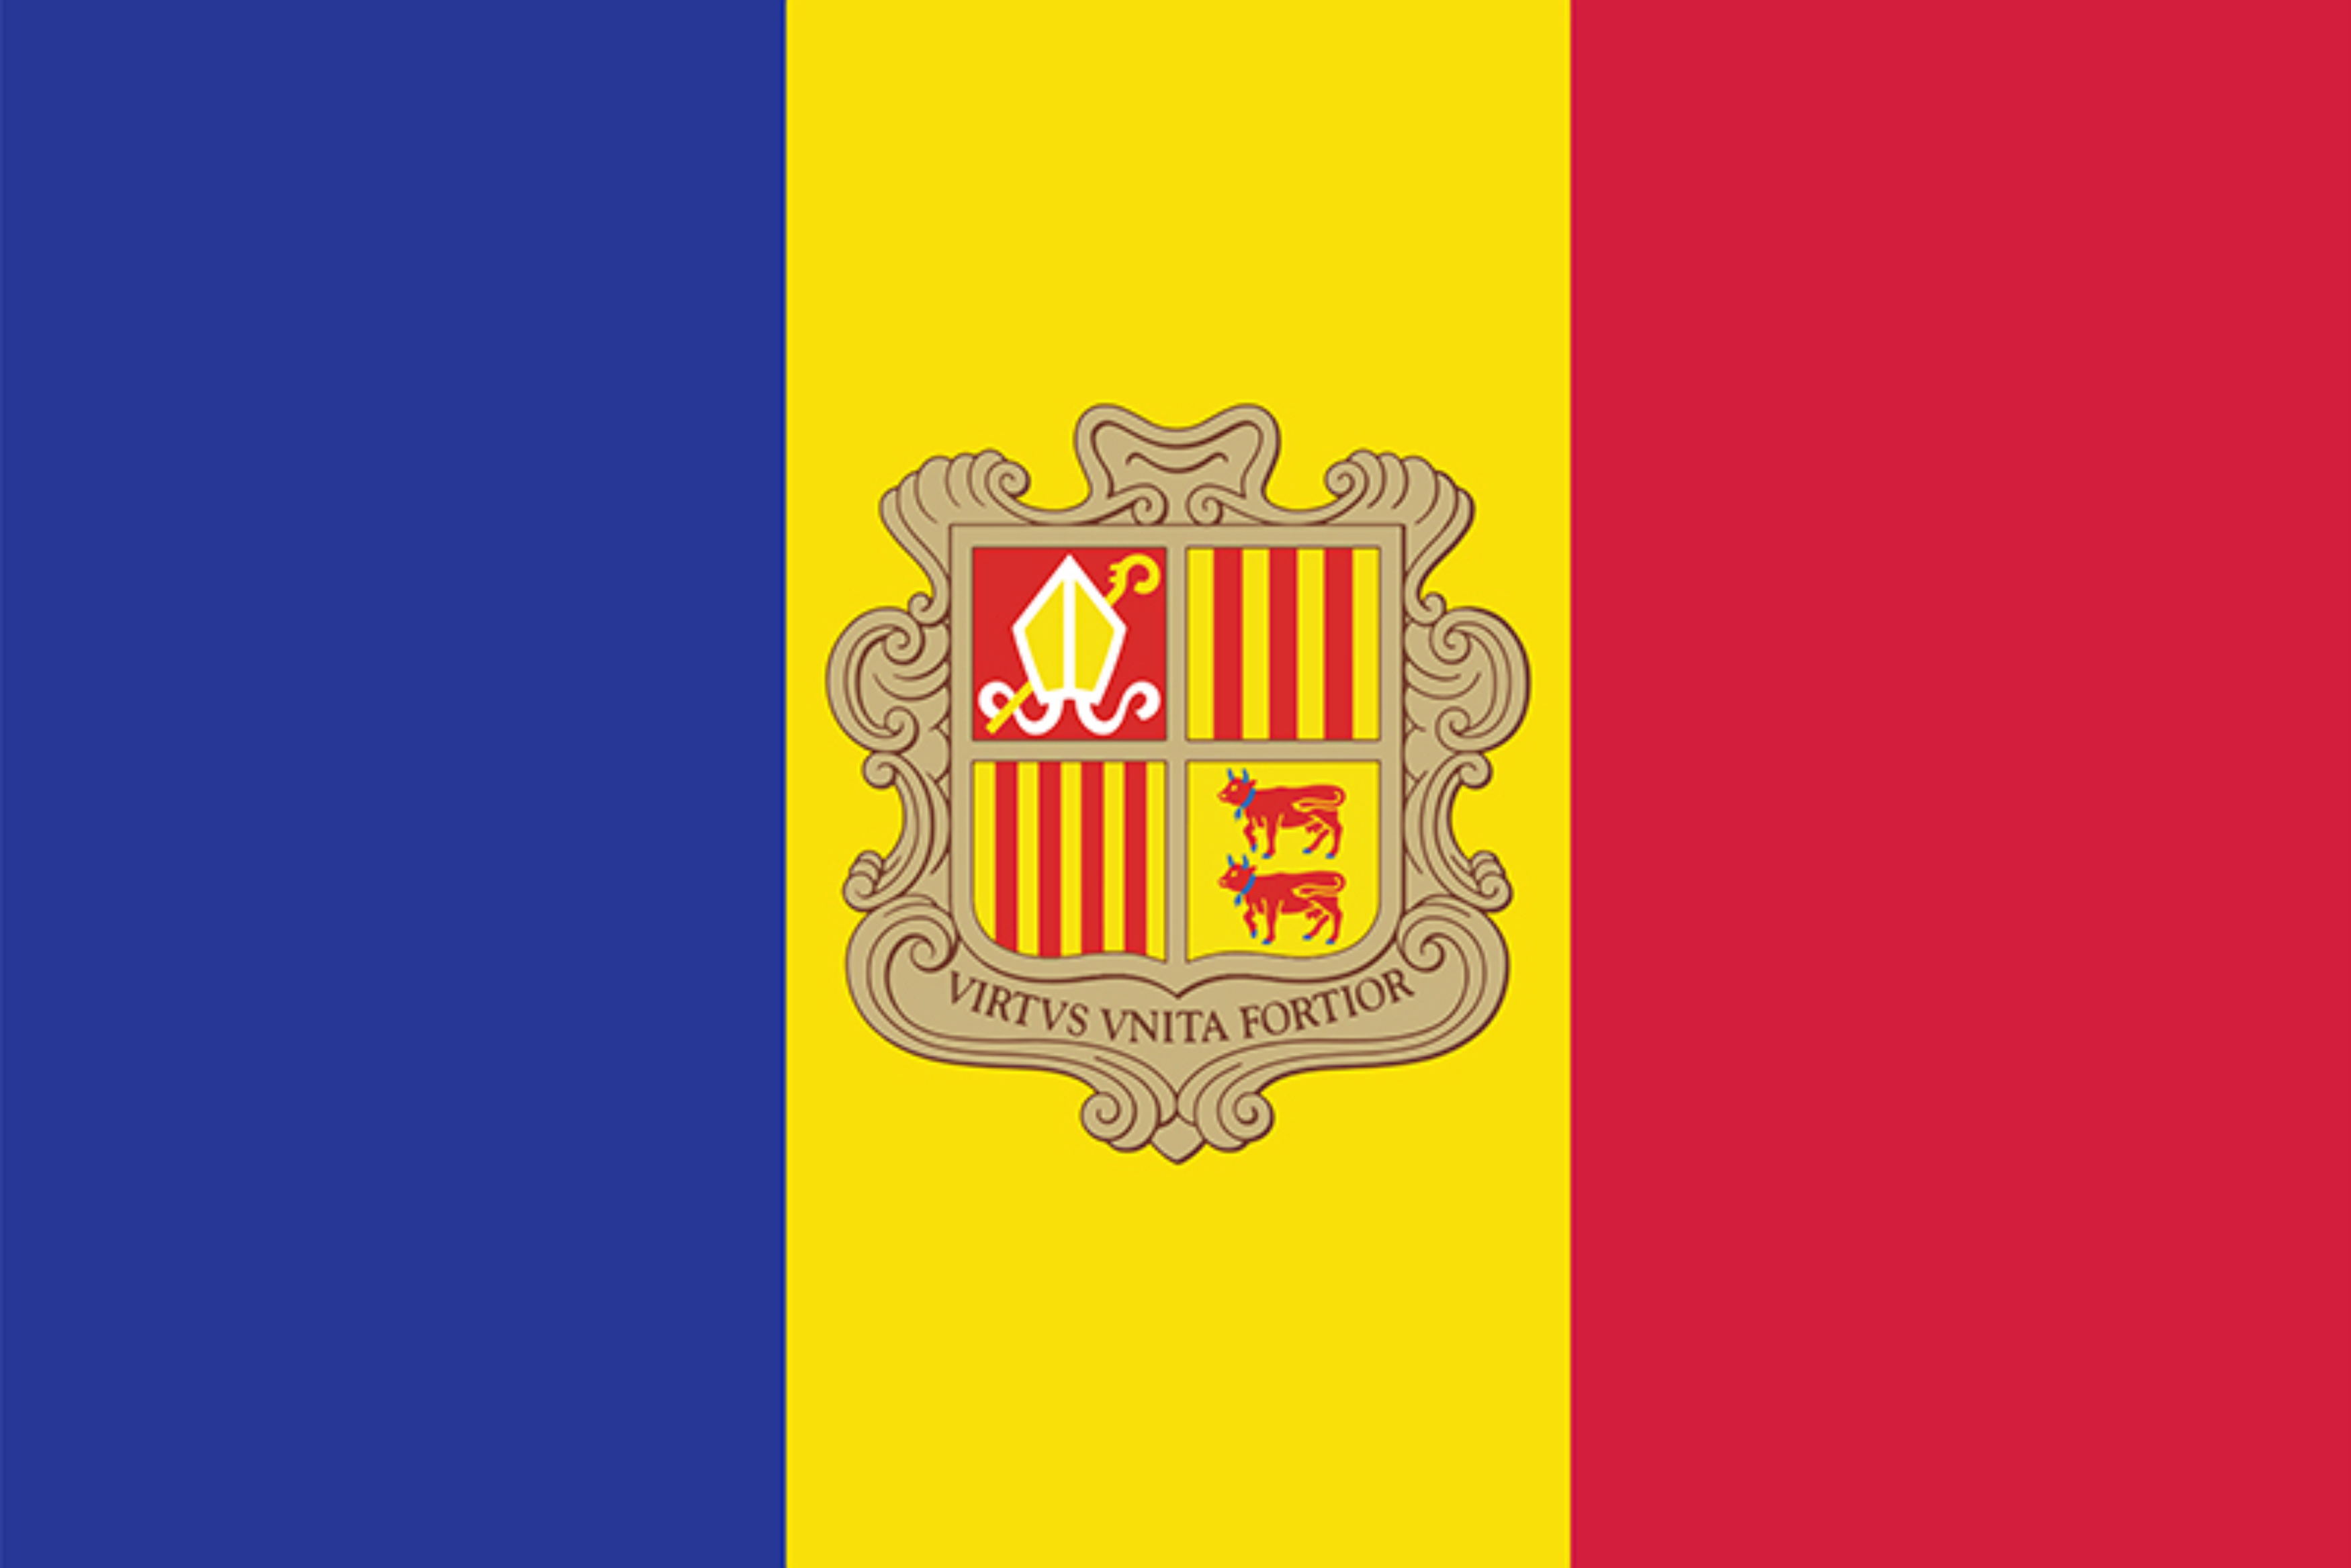 The Andorra flag features three equal vertical bands of blue, yellow, and red with the national coat of arms in the center